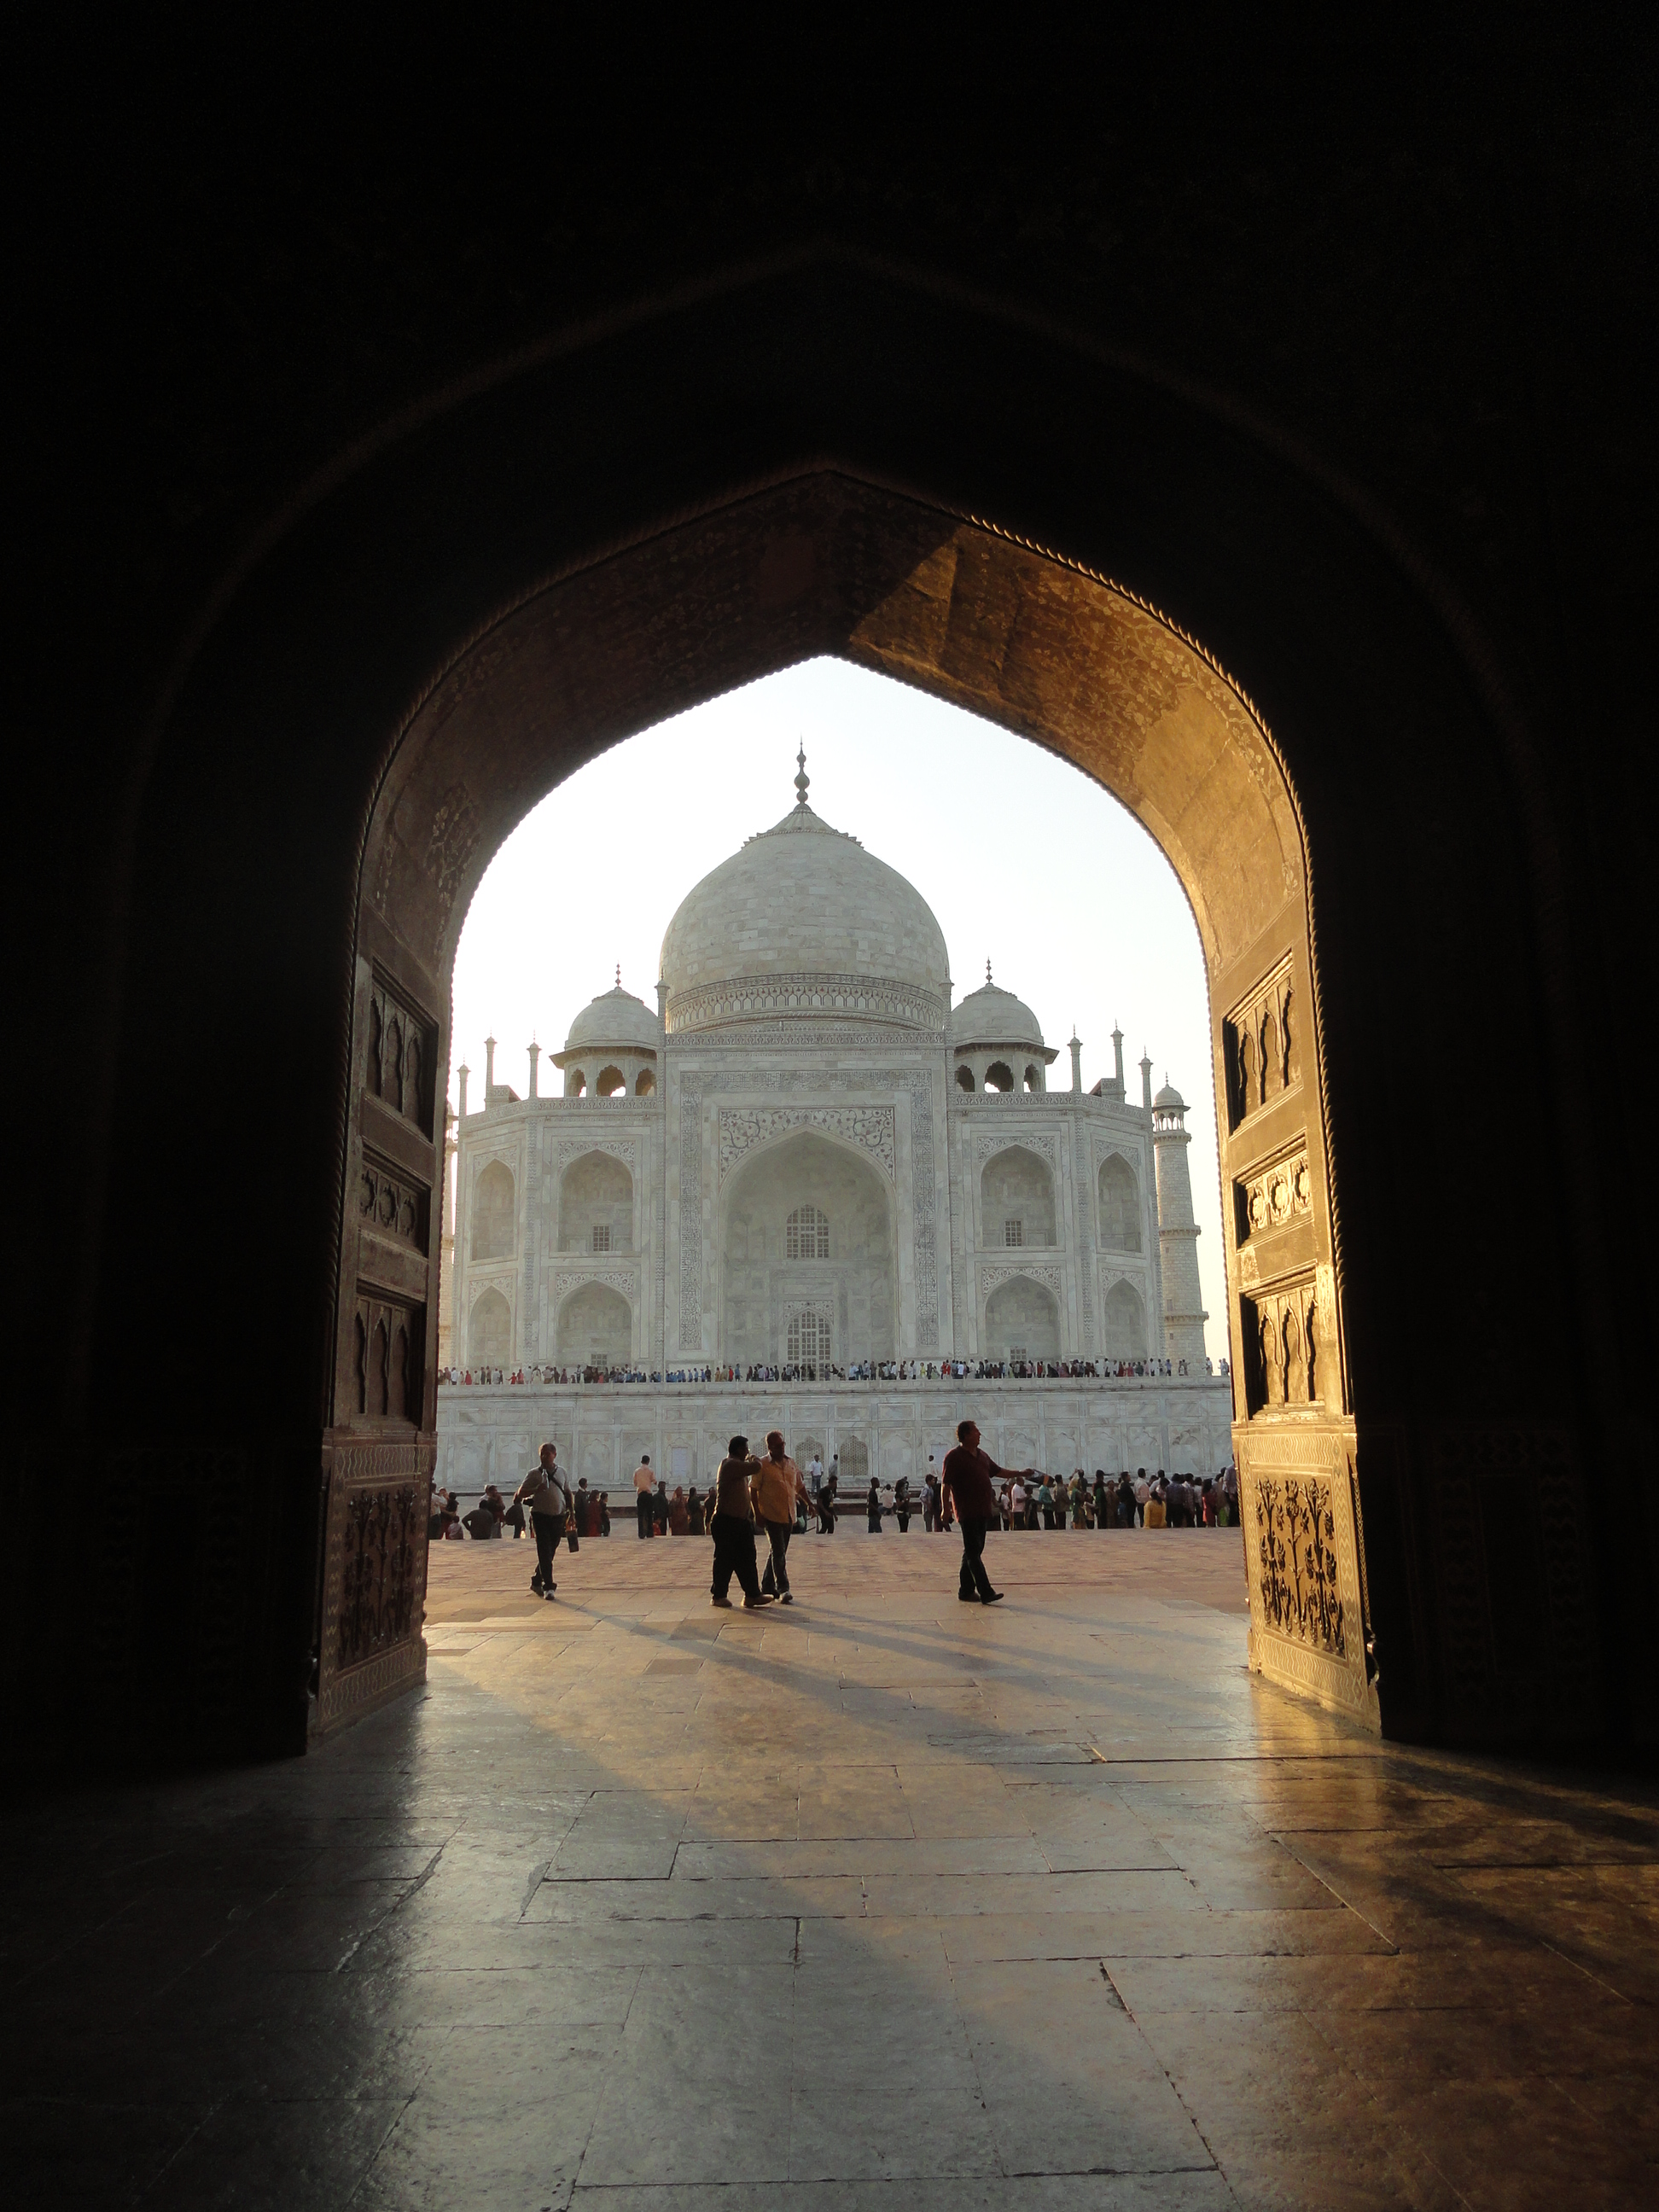 framing the view of the taj mahal